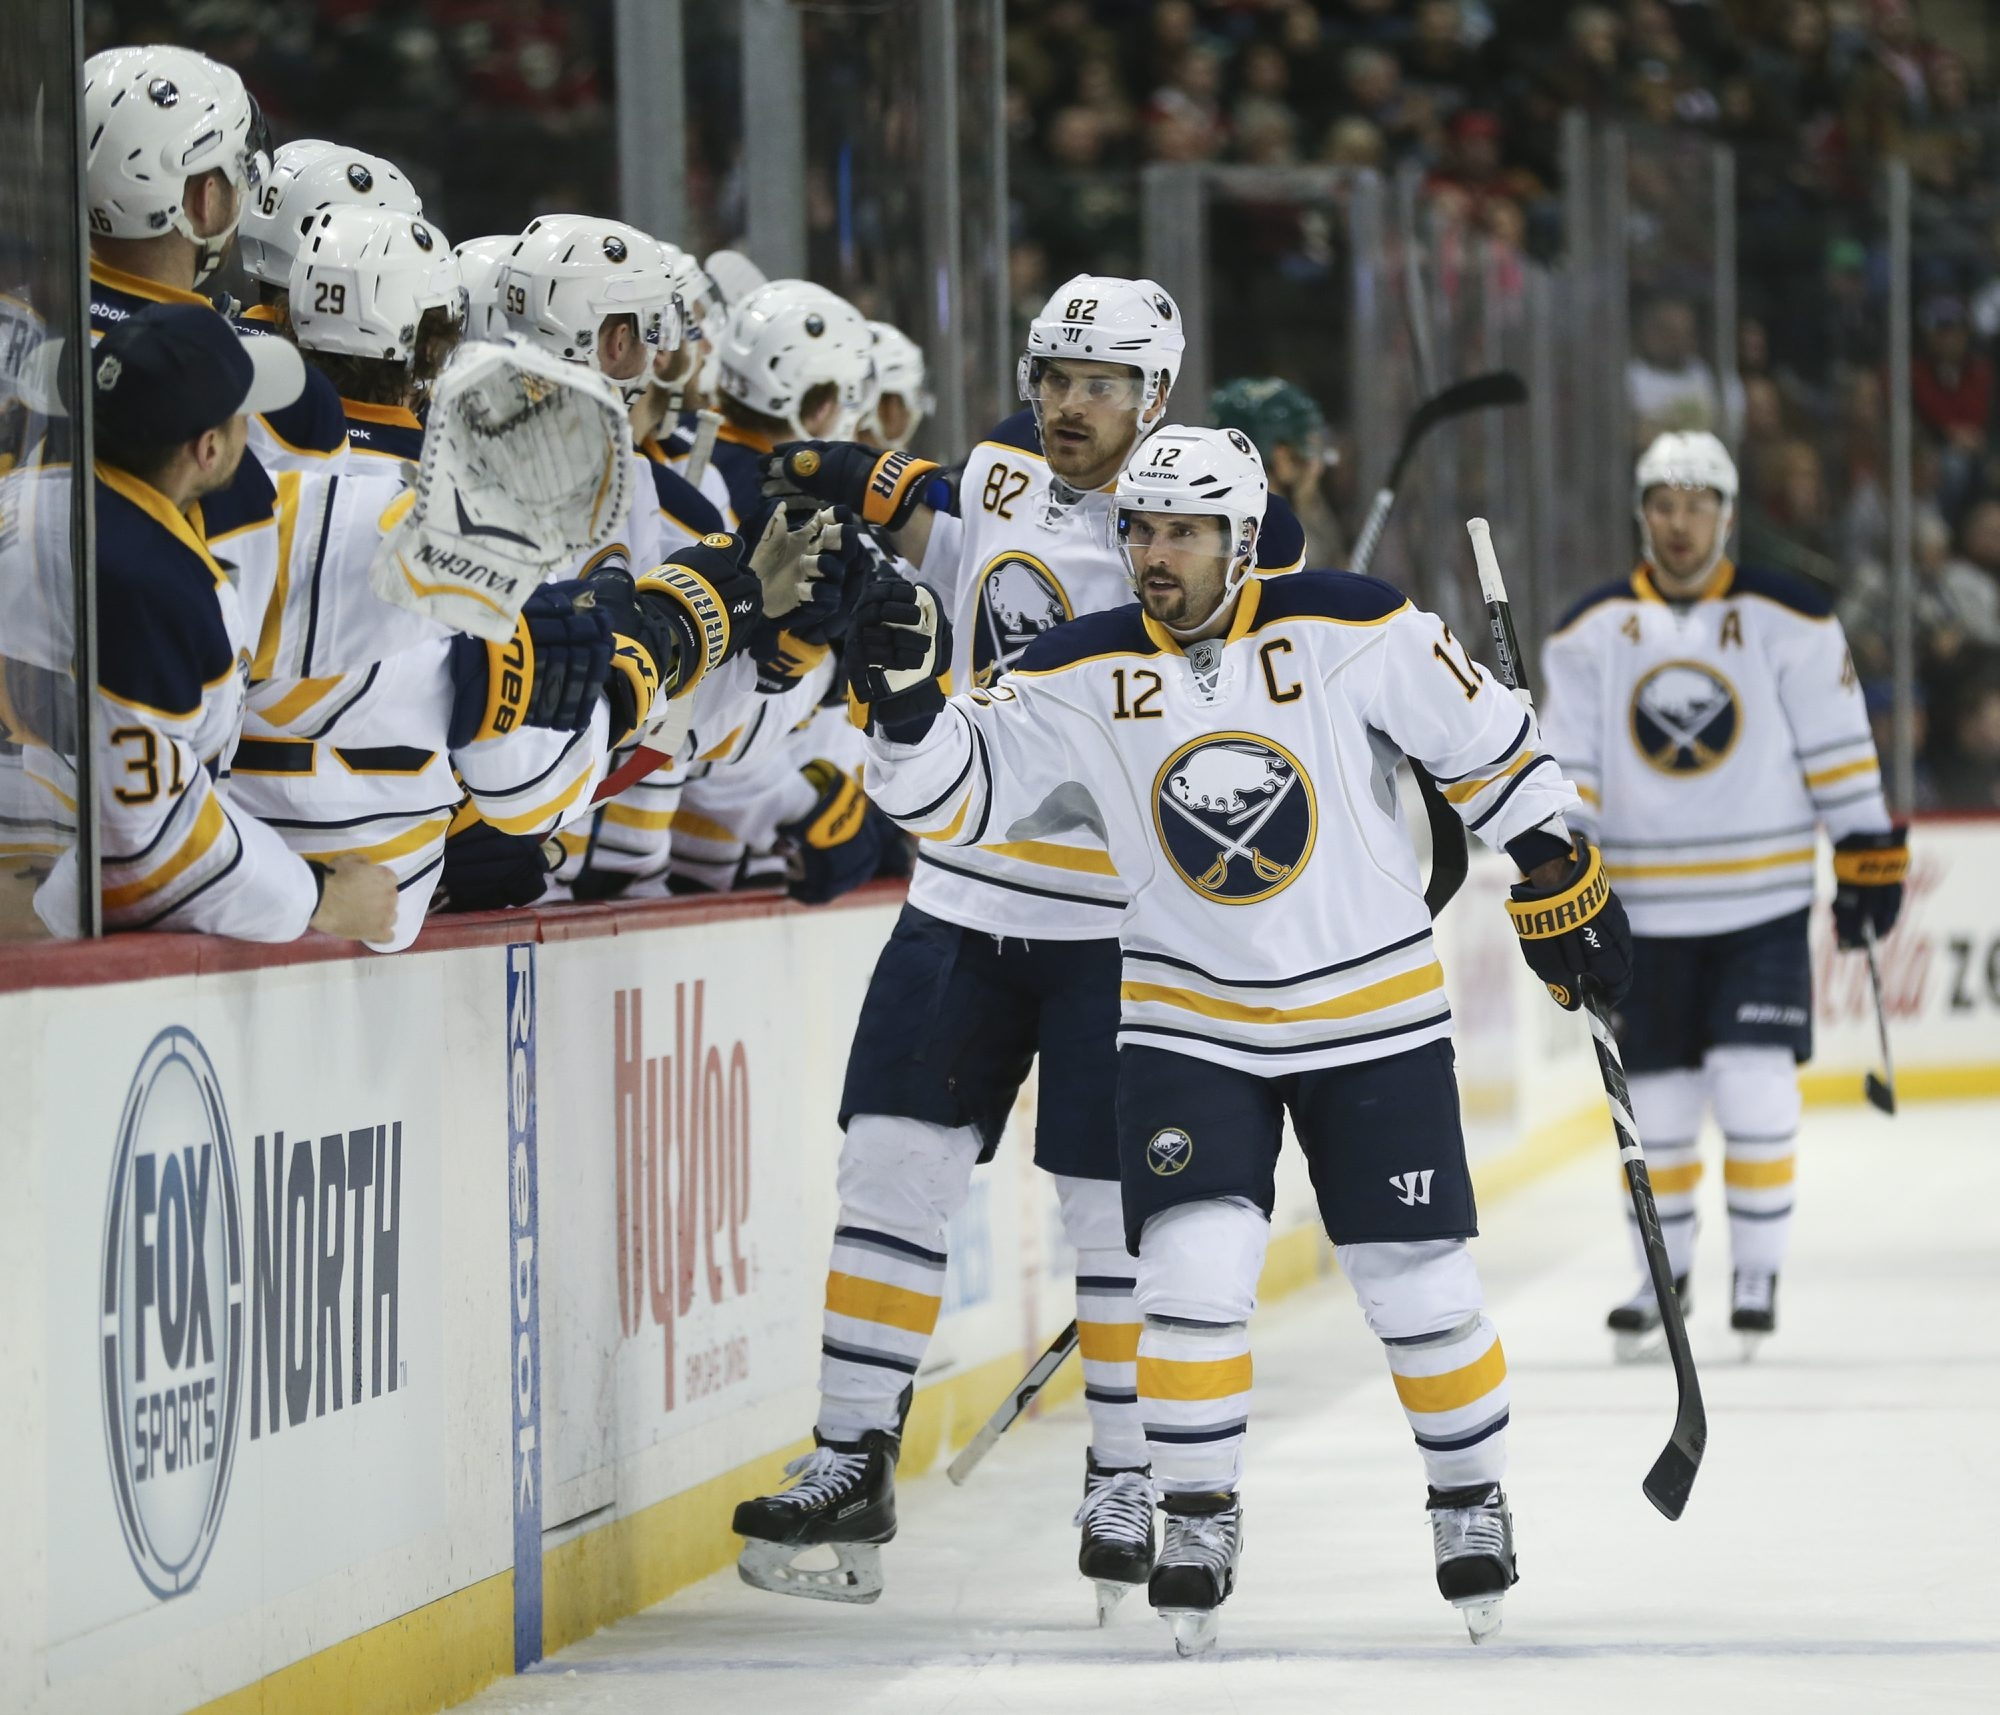 The Sabres' Brian Gionta is congratulated by the bench after his first-period goal against Minnesota. The Sabres won, 3-2.